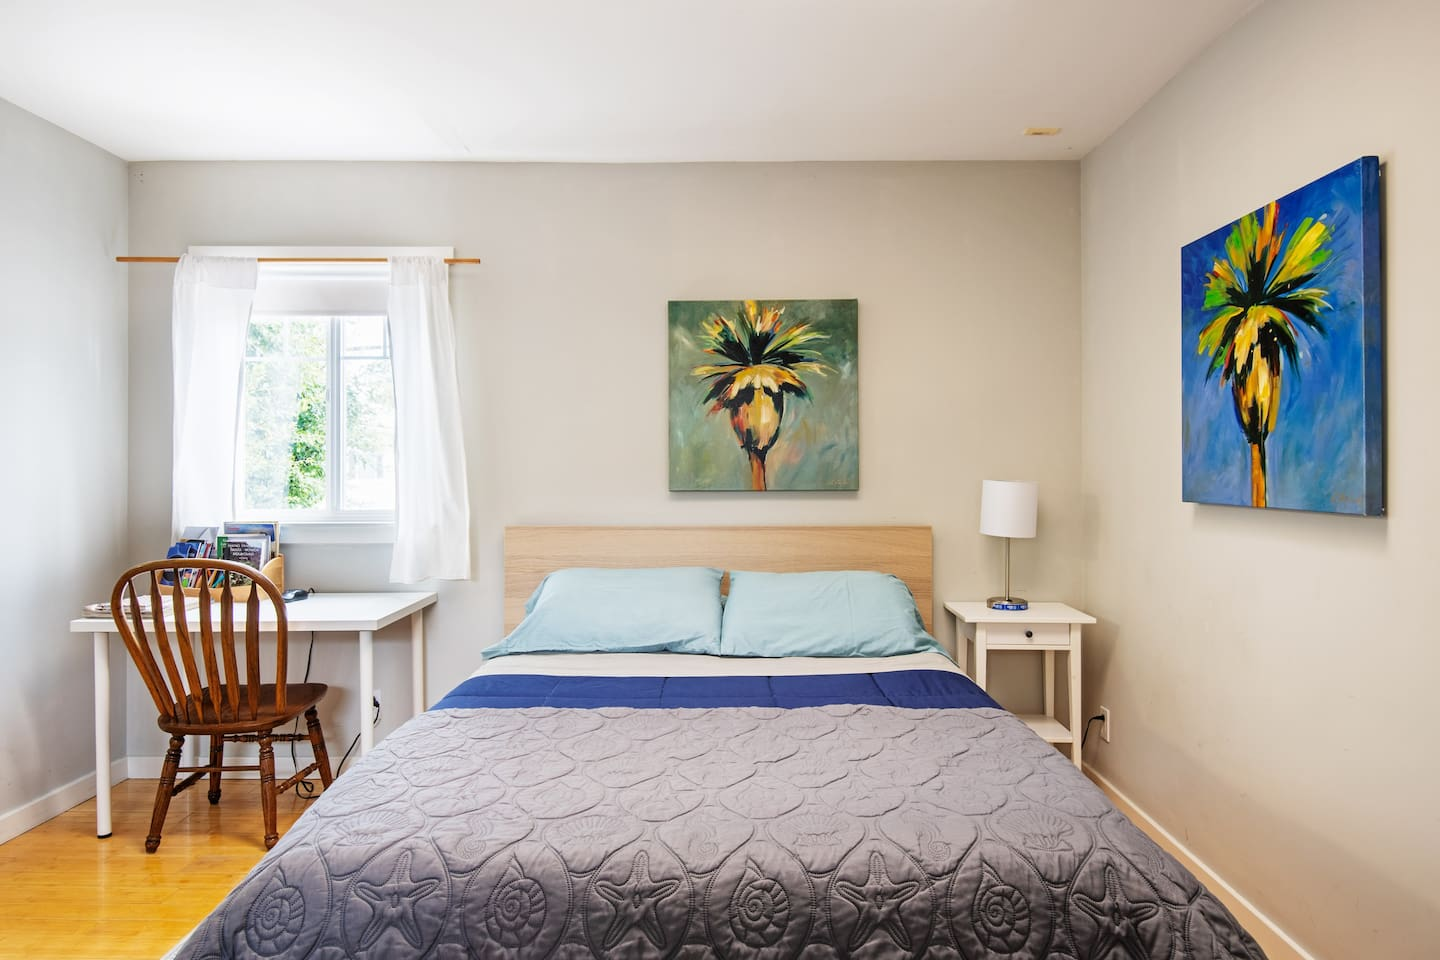 Your home away from home includes a brand new queen memory foam mattress and USB port on bedside lamp.